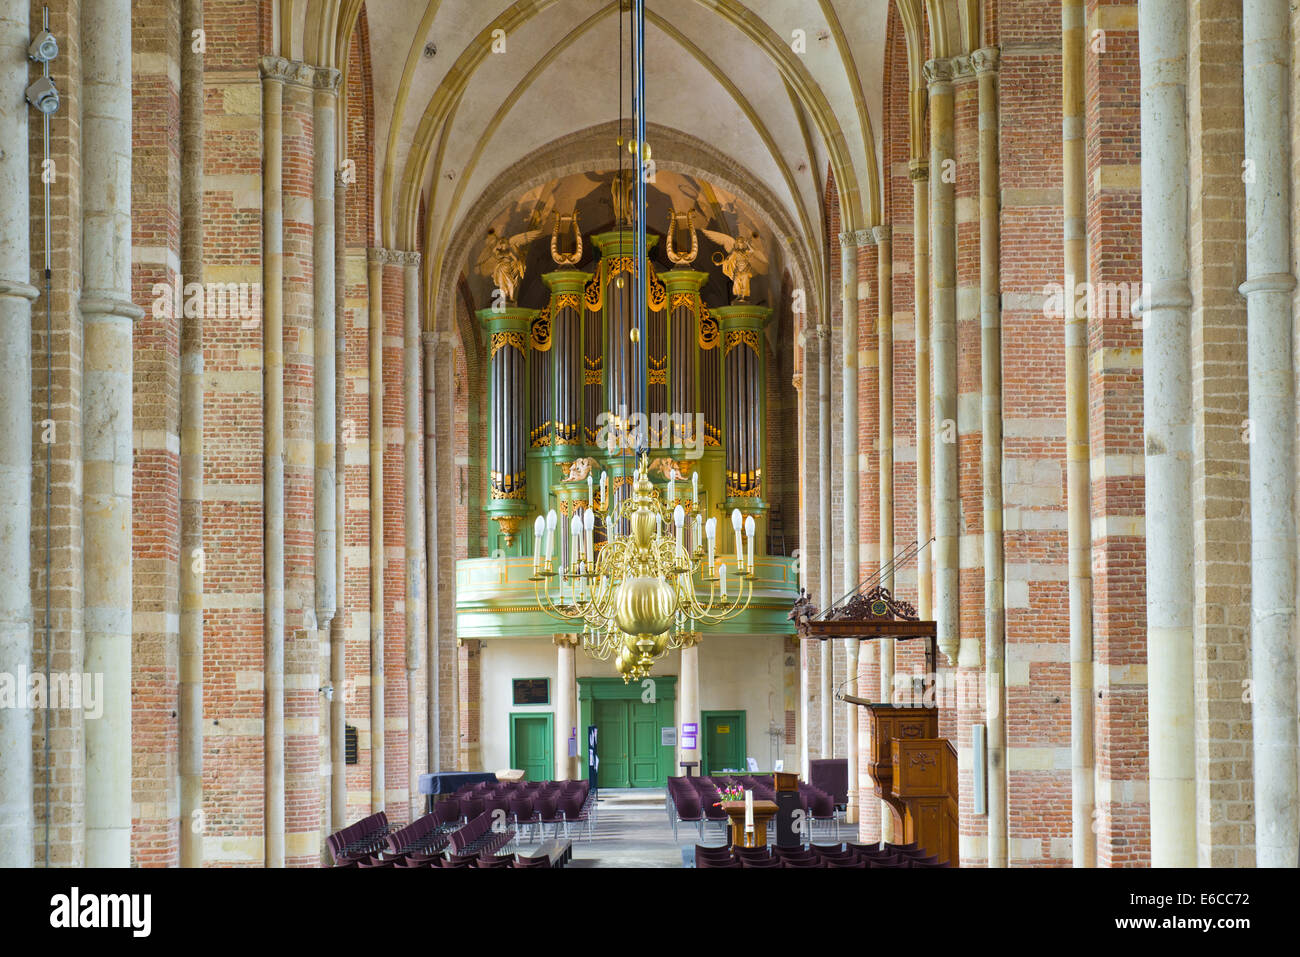 interior of the Lebuinus church in deventer, netherlands Stock Photo